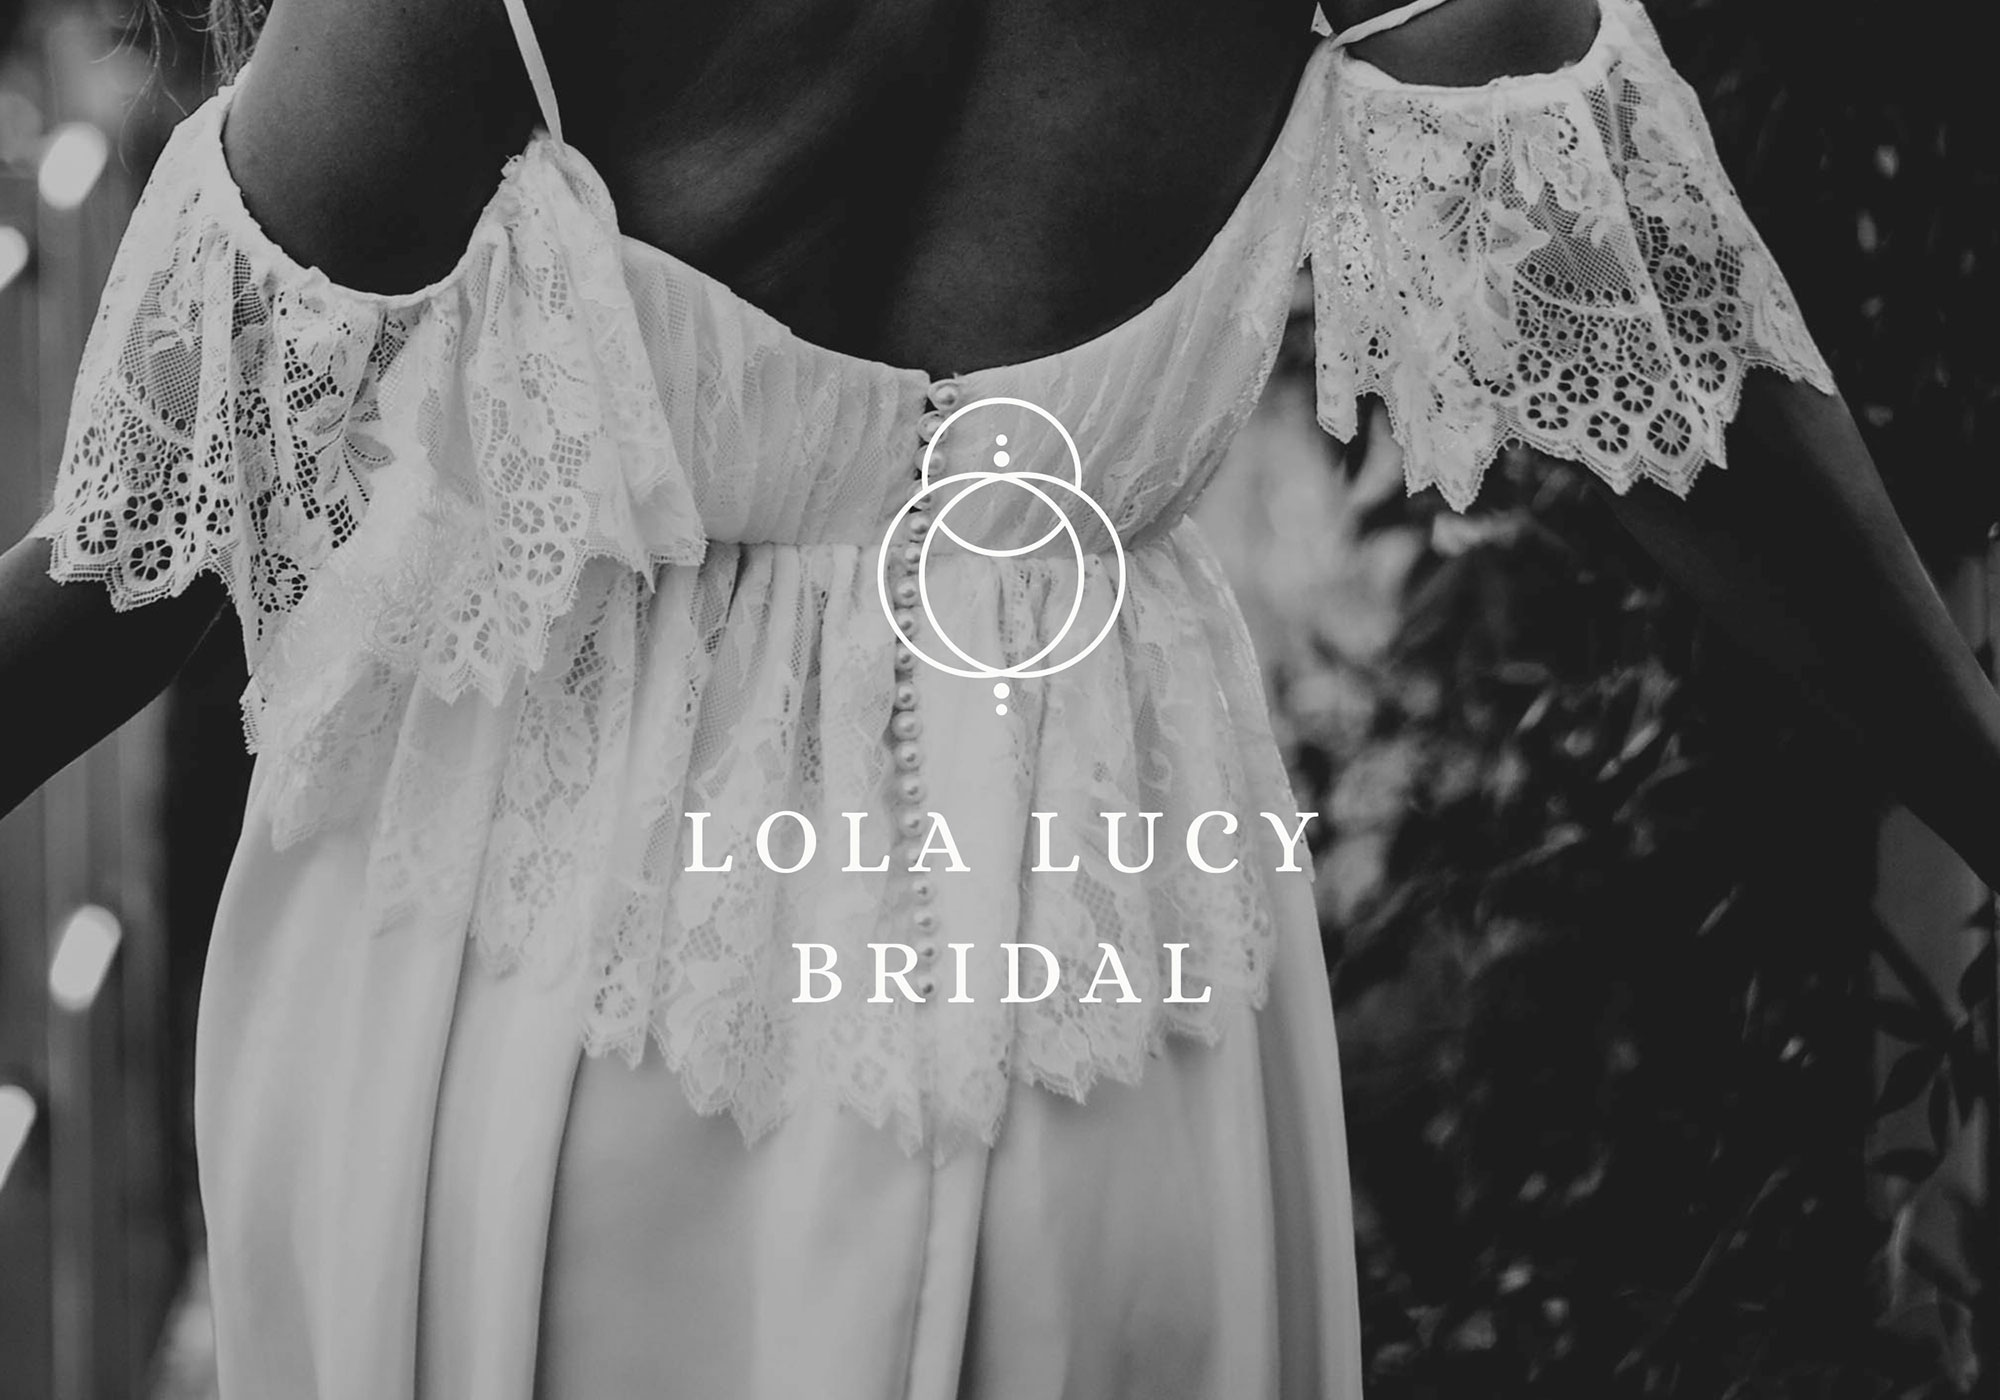 Lola Lucy